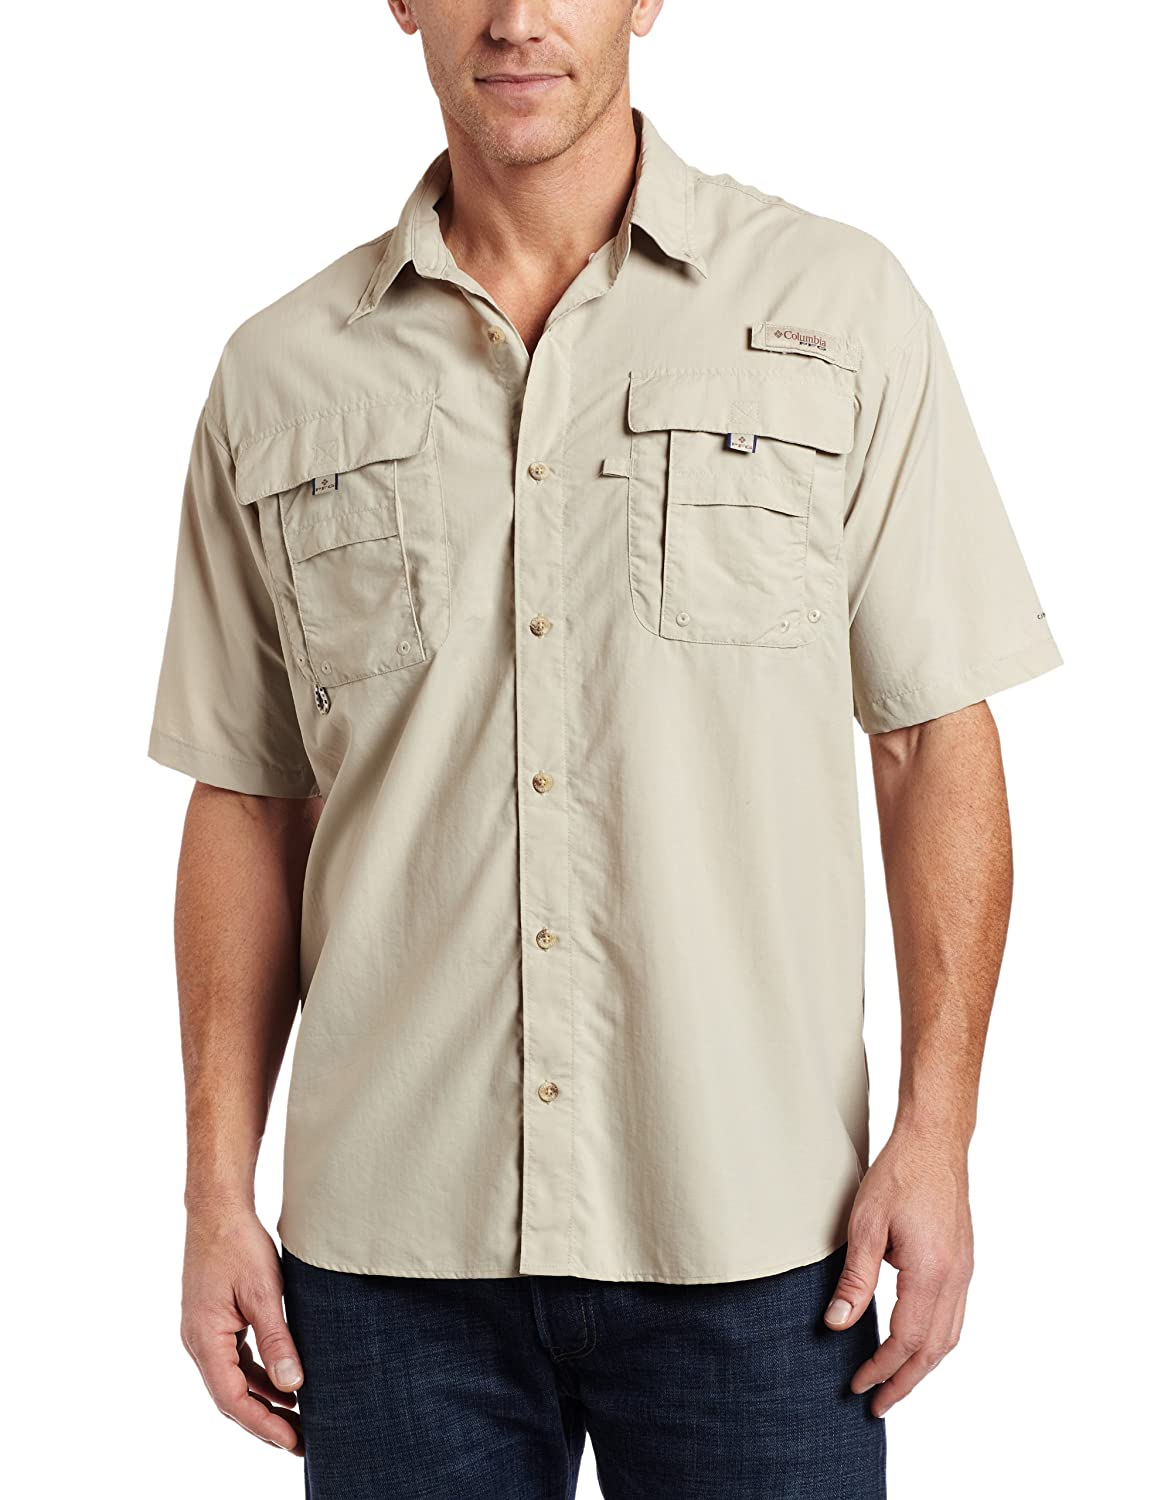 durable nylon shirt in fossil color